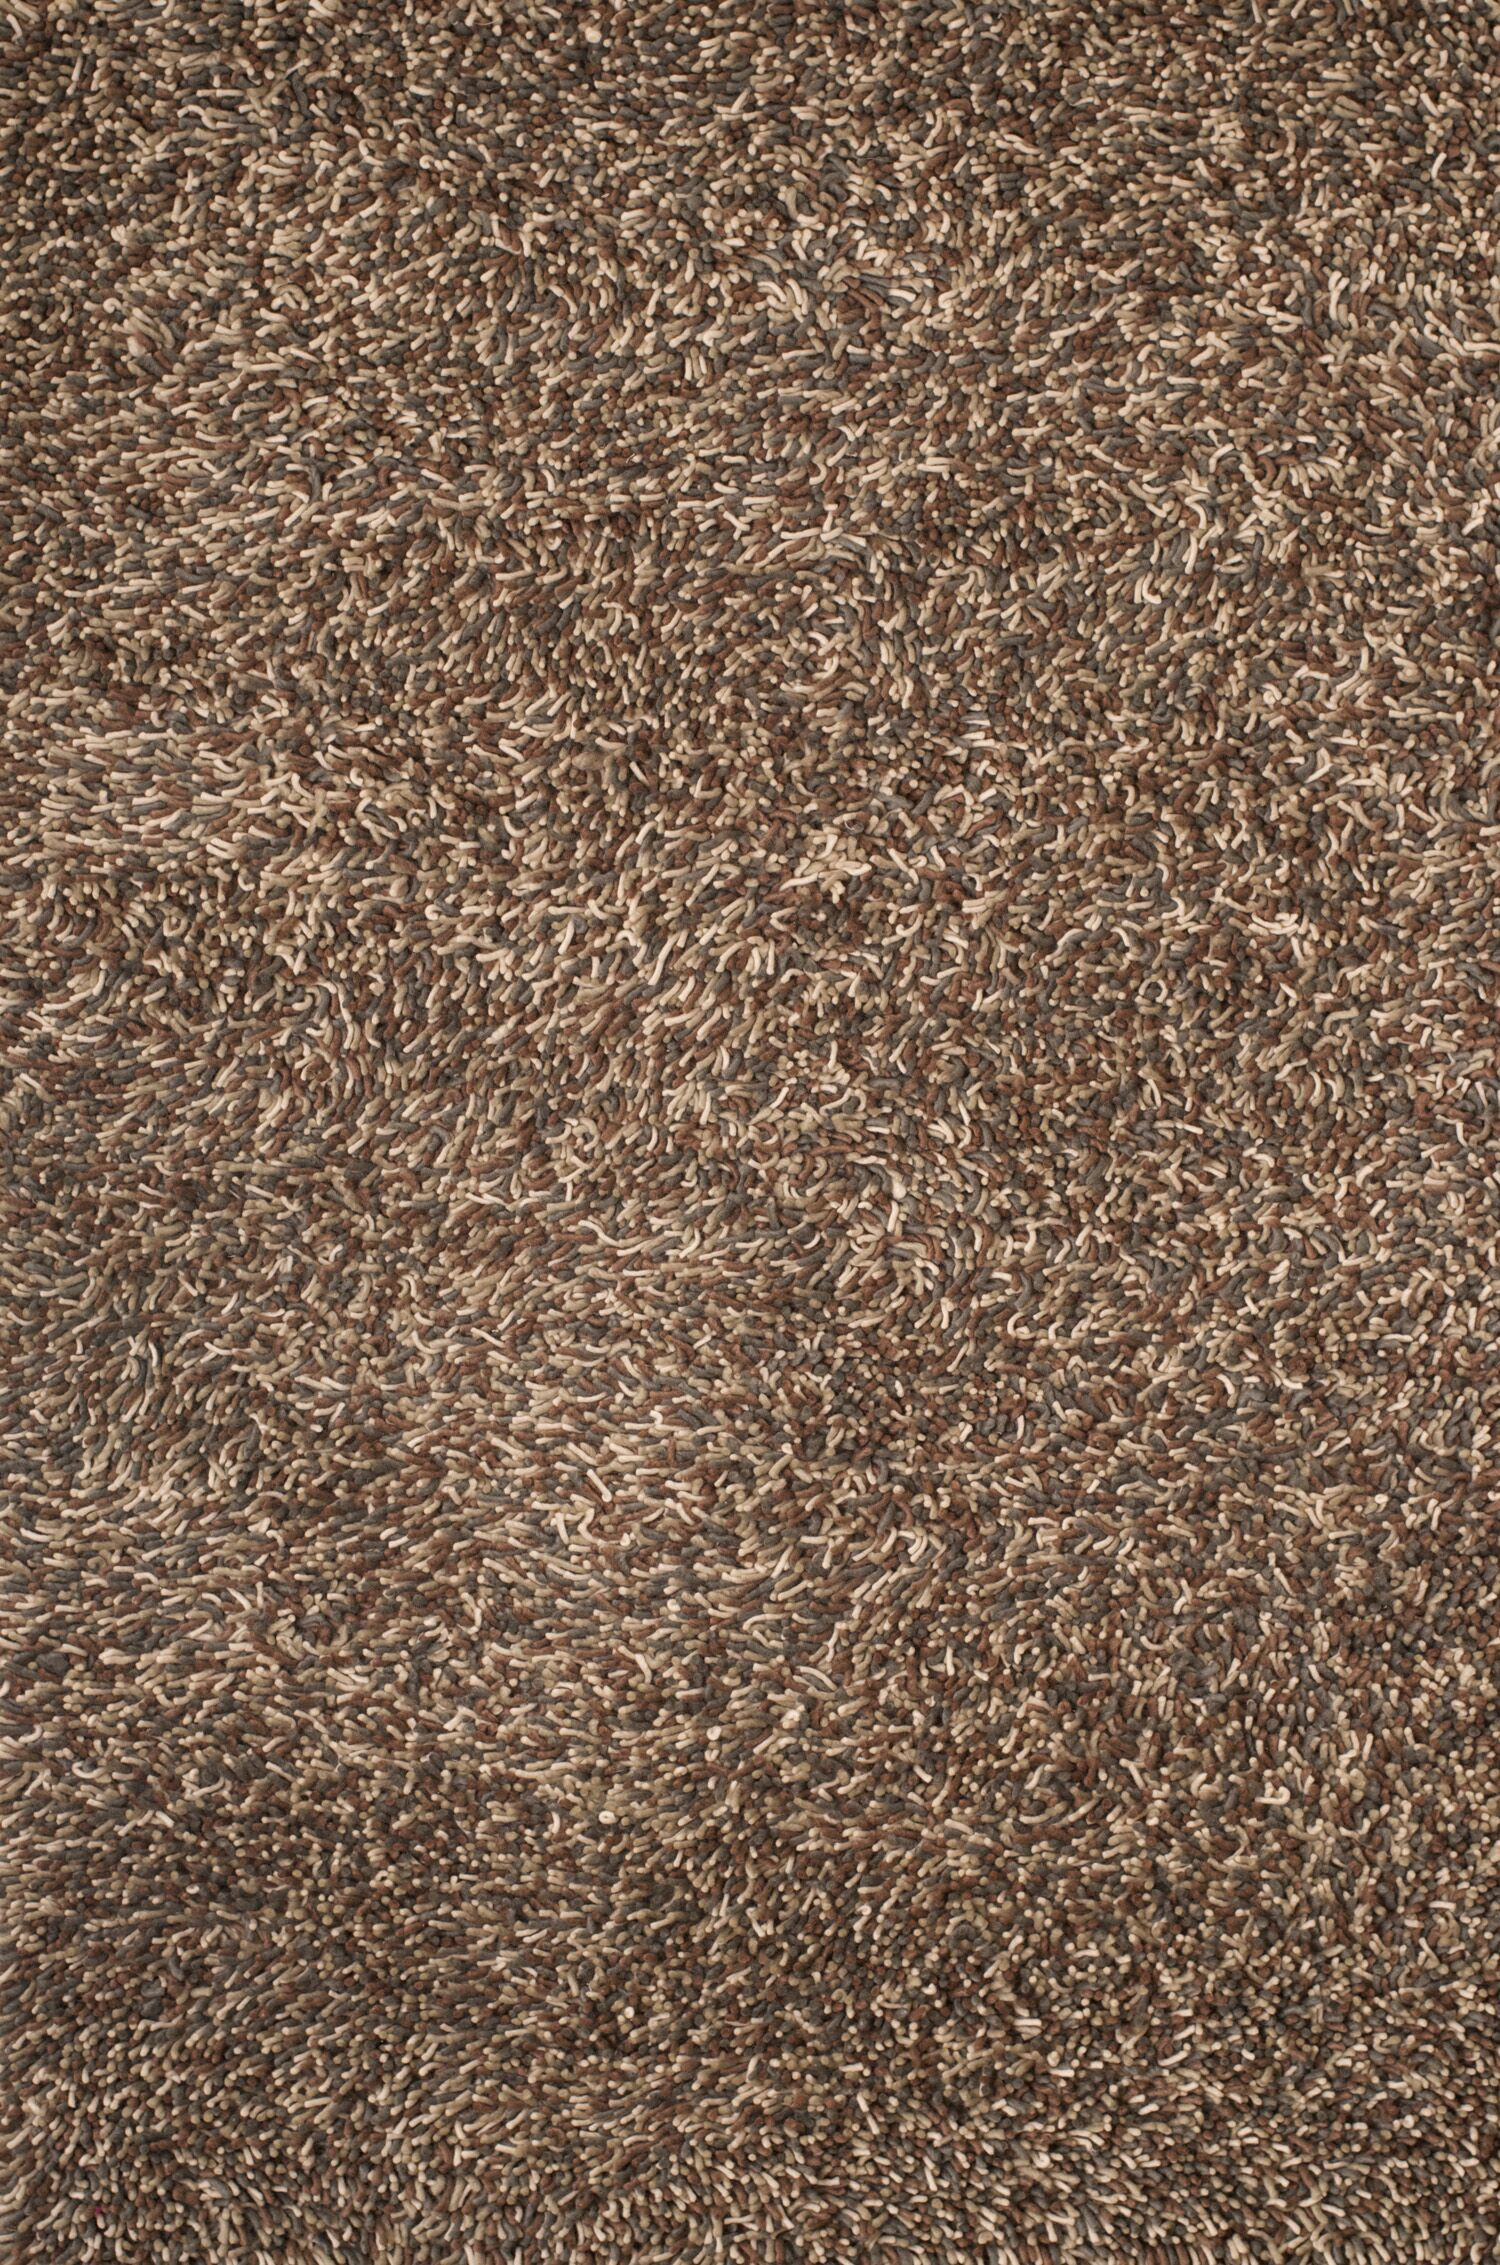 Textures Lifestyle Hand Tufted Wool Tan Area Rug Rug Size: 5' x 8'